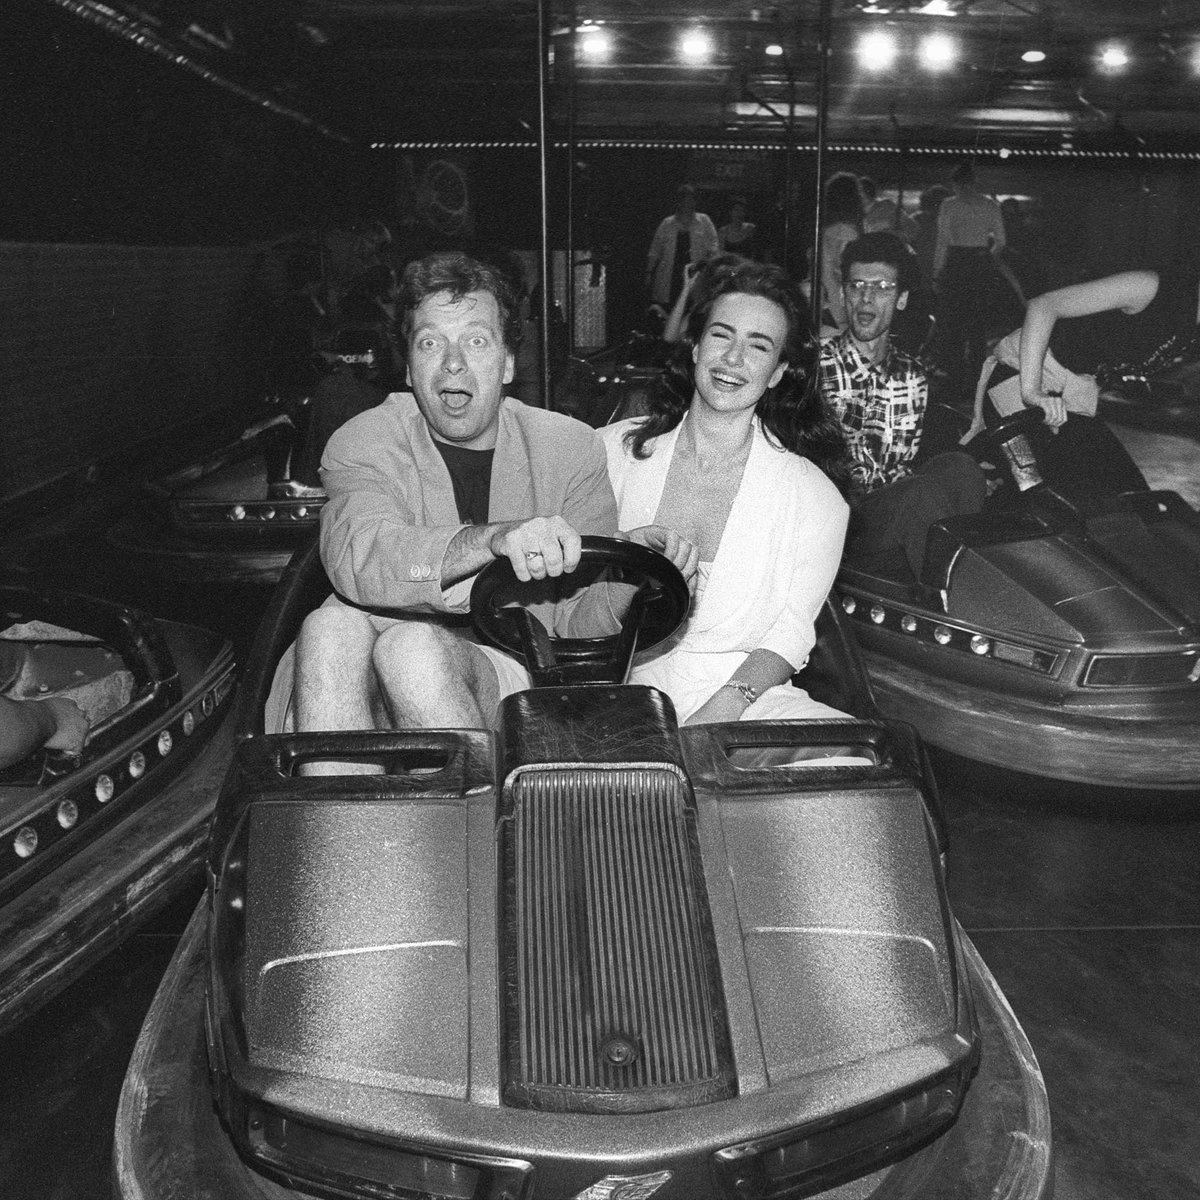 Today would have been Factory Records' co-founder #TonyWilson's 69th birthday. Here he is on the dodgems in The Haçienda in 1992, because of course they put dodgems in there.   Pic by Howard Barlow